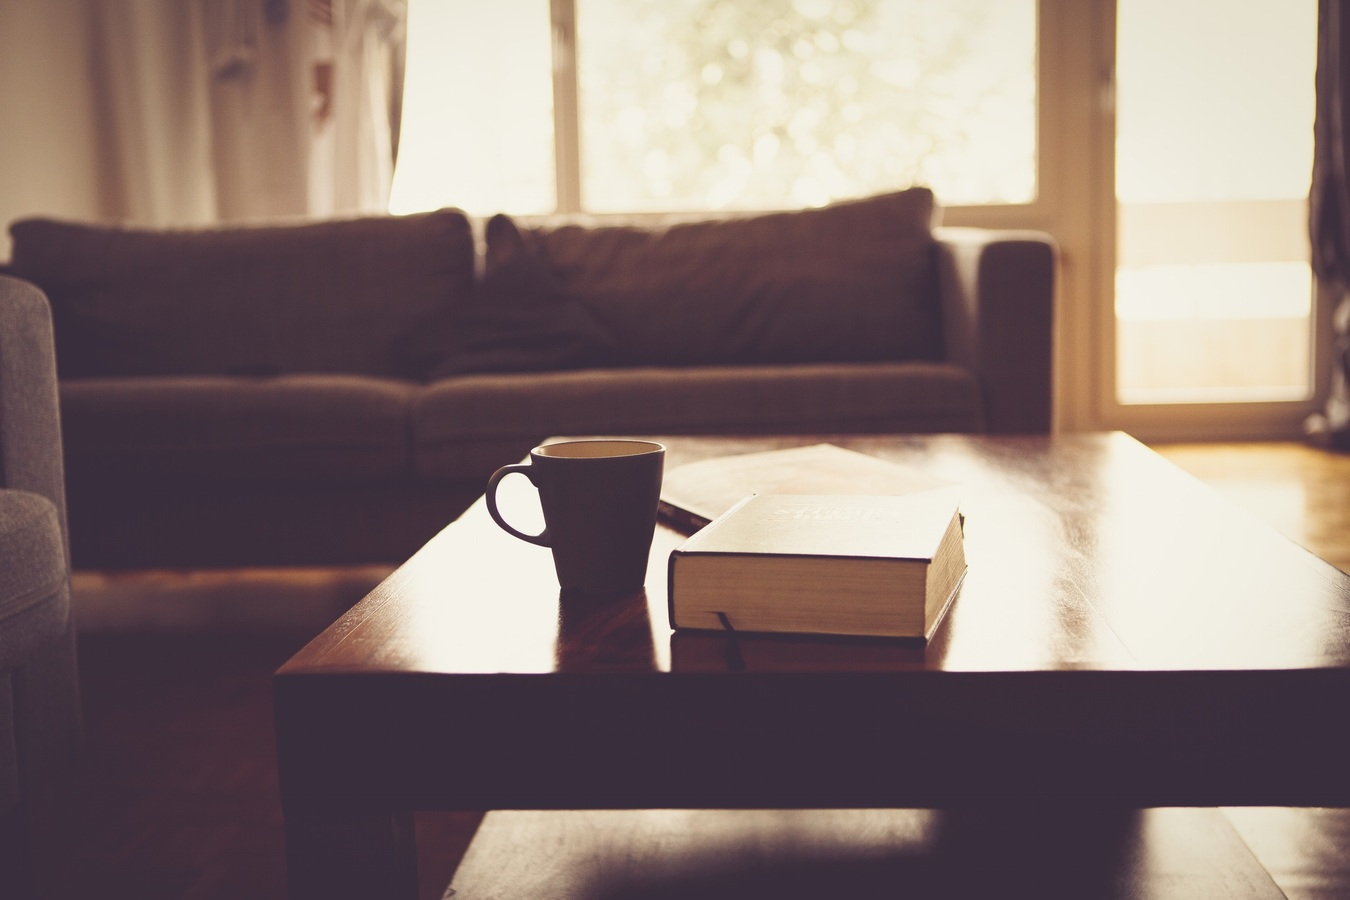 cofee and book on a table with couch on back